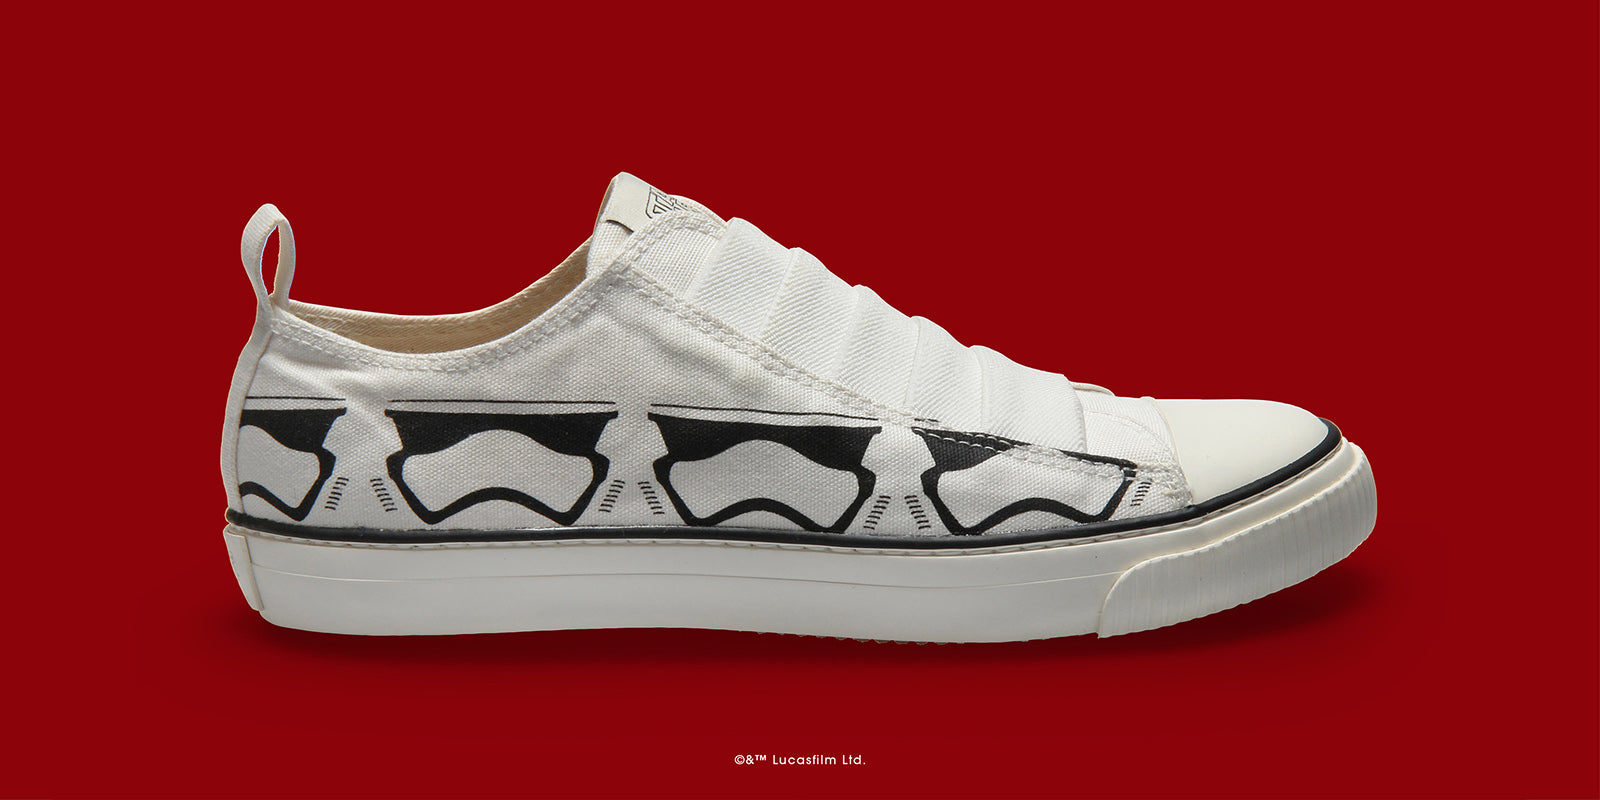 po-zu star wars x-wing sneaker